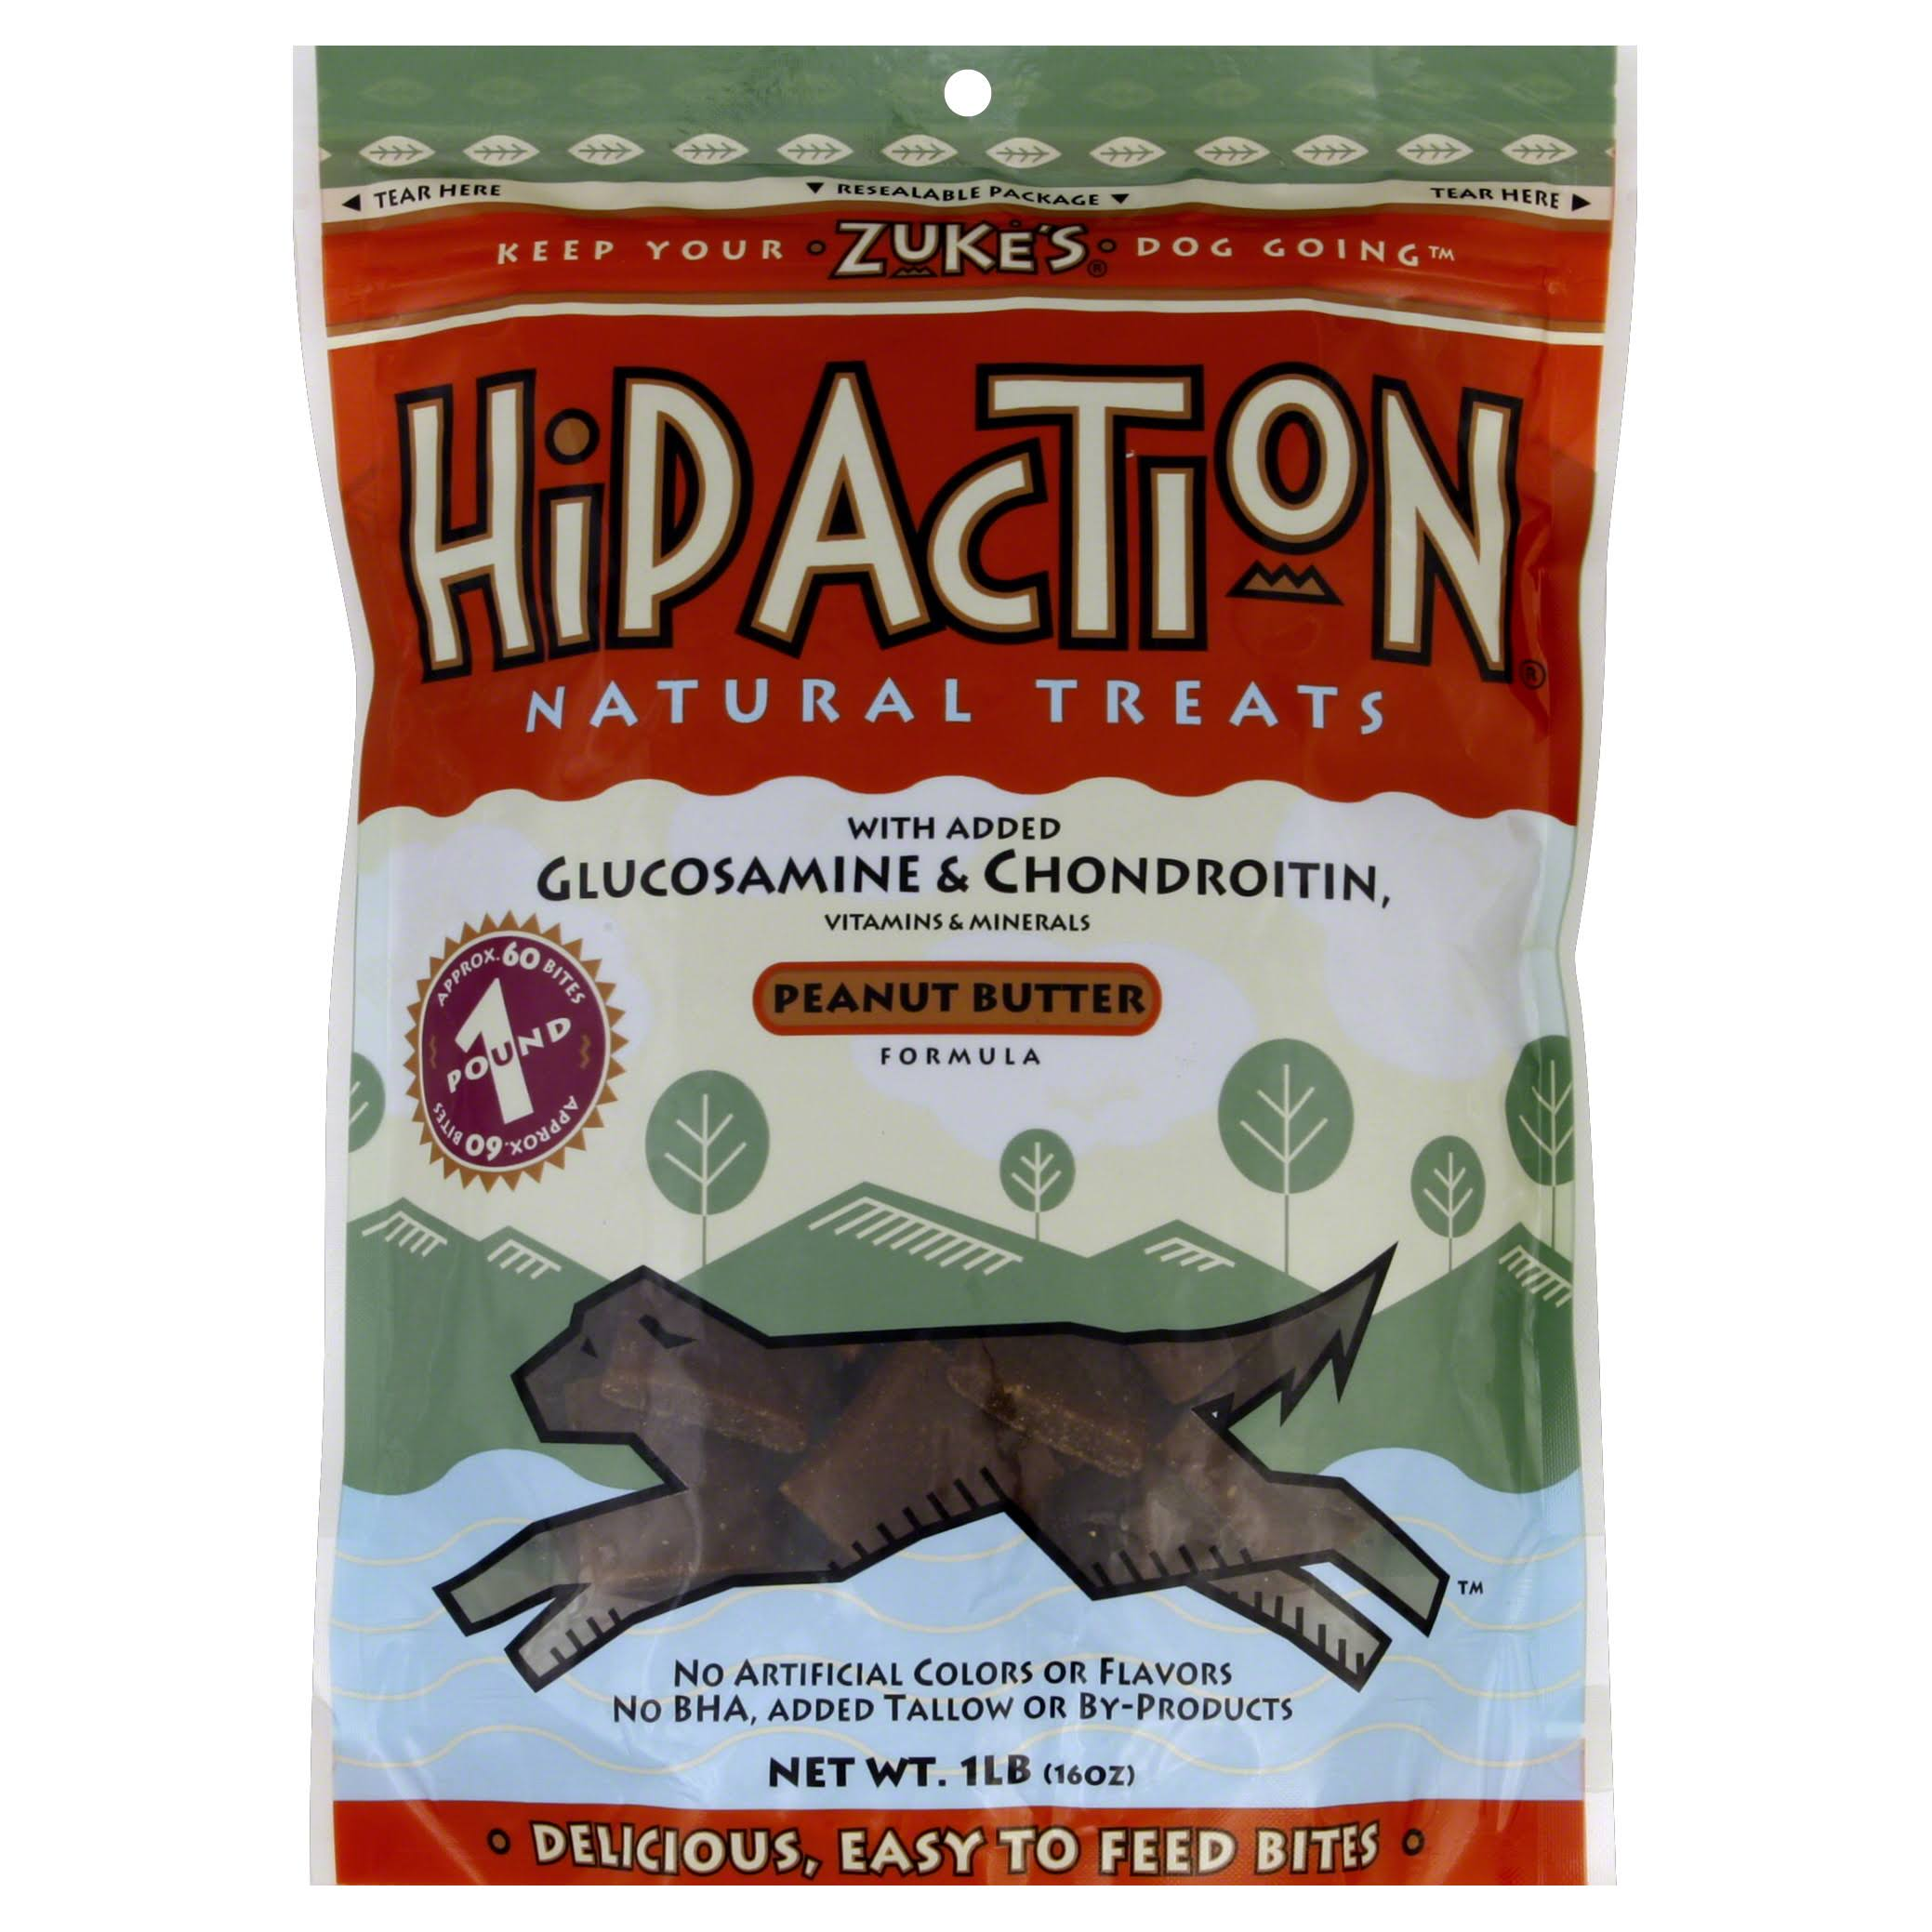 Hip Action Natural Dog Treats, Peanut Butter - 1 lb bag